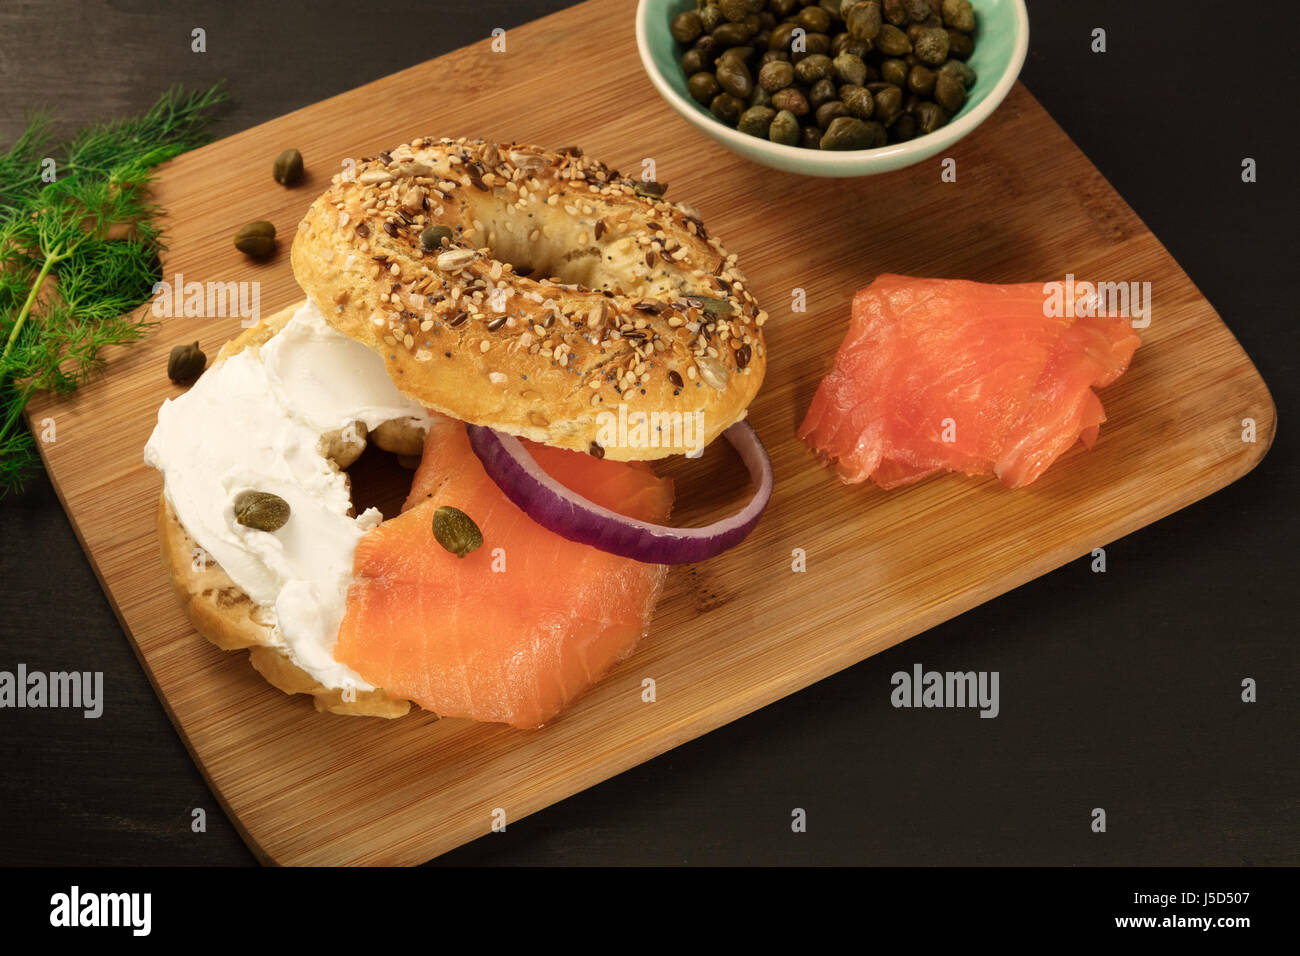 Bagel with cream cheese and lox, place for text - Stock Image